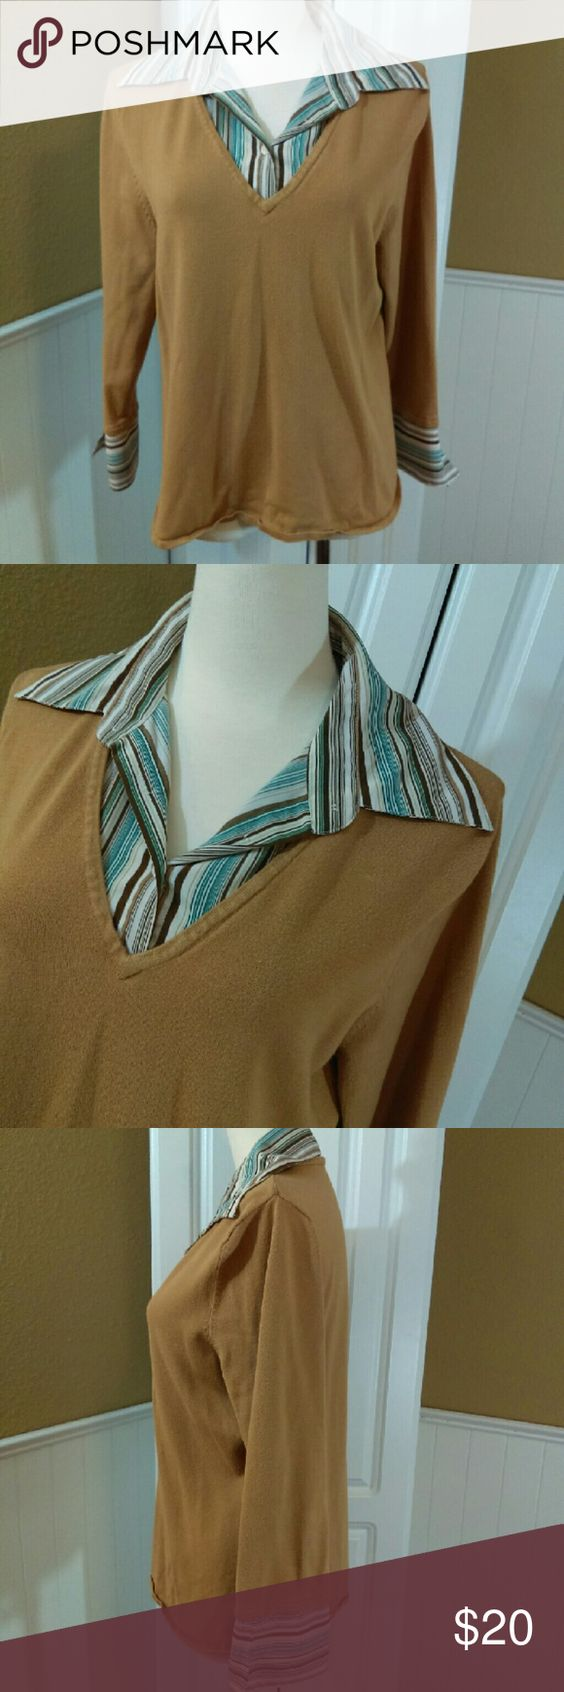 """Career Casual Top No flaws, like new, only worn once  70% rayon, 30% nylon  24"""" length bay studio Tops Blouses"""